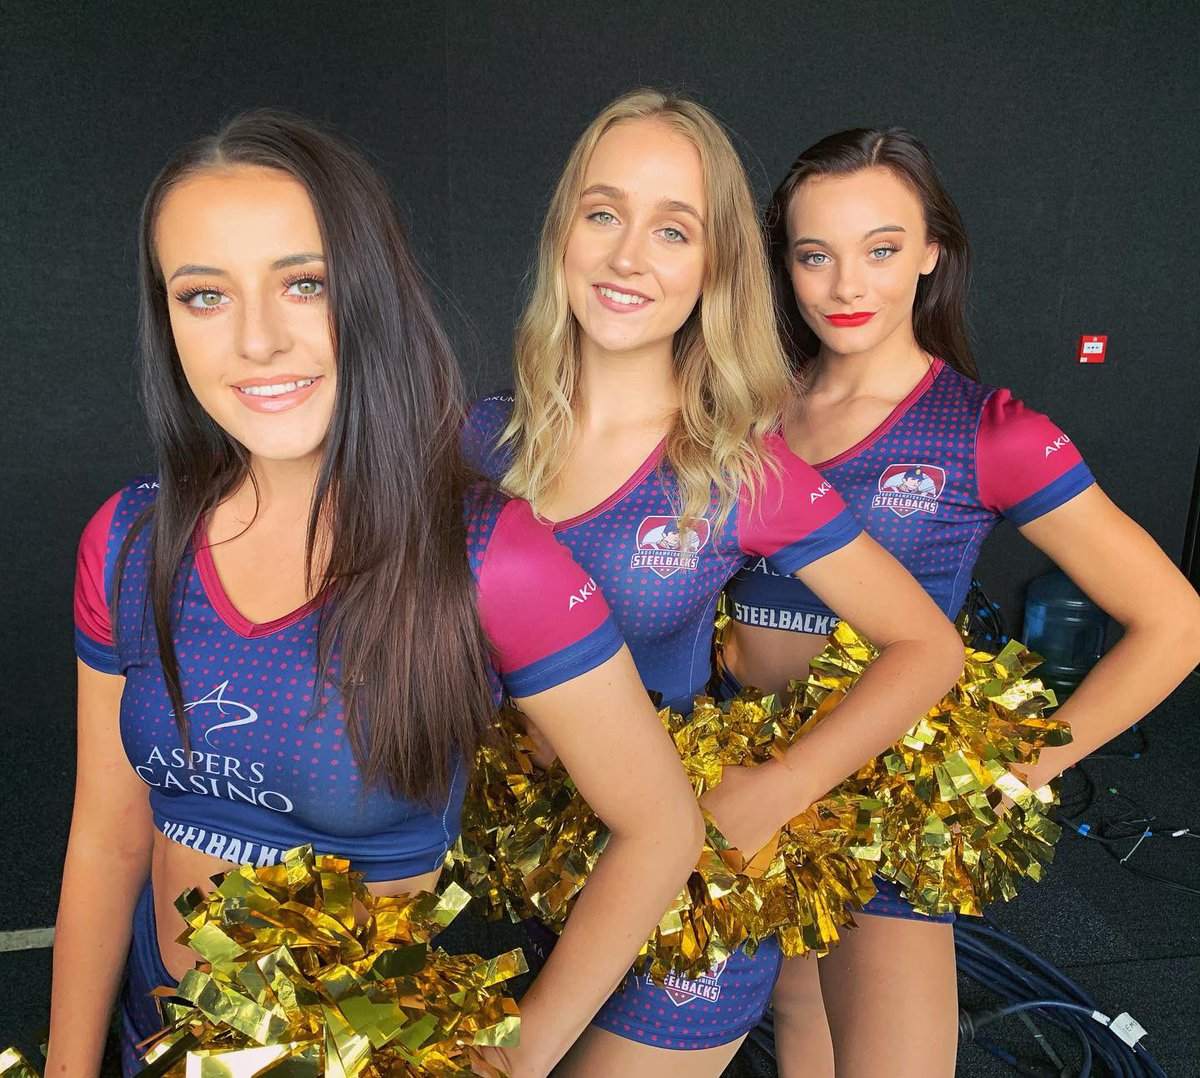 RT if you think more cricket teams should have cheerleaders   #cricket #cheerleaders #t20 #t20blast2019 #ipl #englandcricket #indiancricket #vitalityblast<br>http://pic.twitter.com/qneP5dagLE